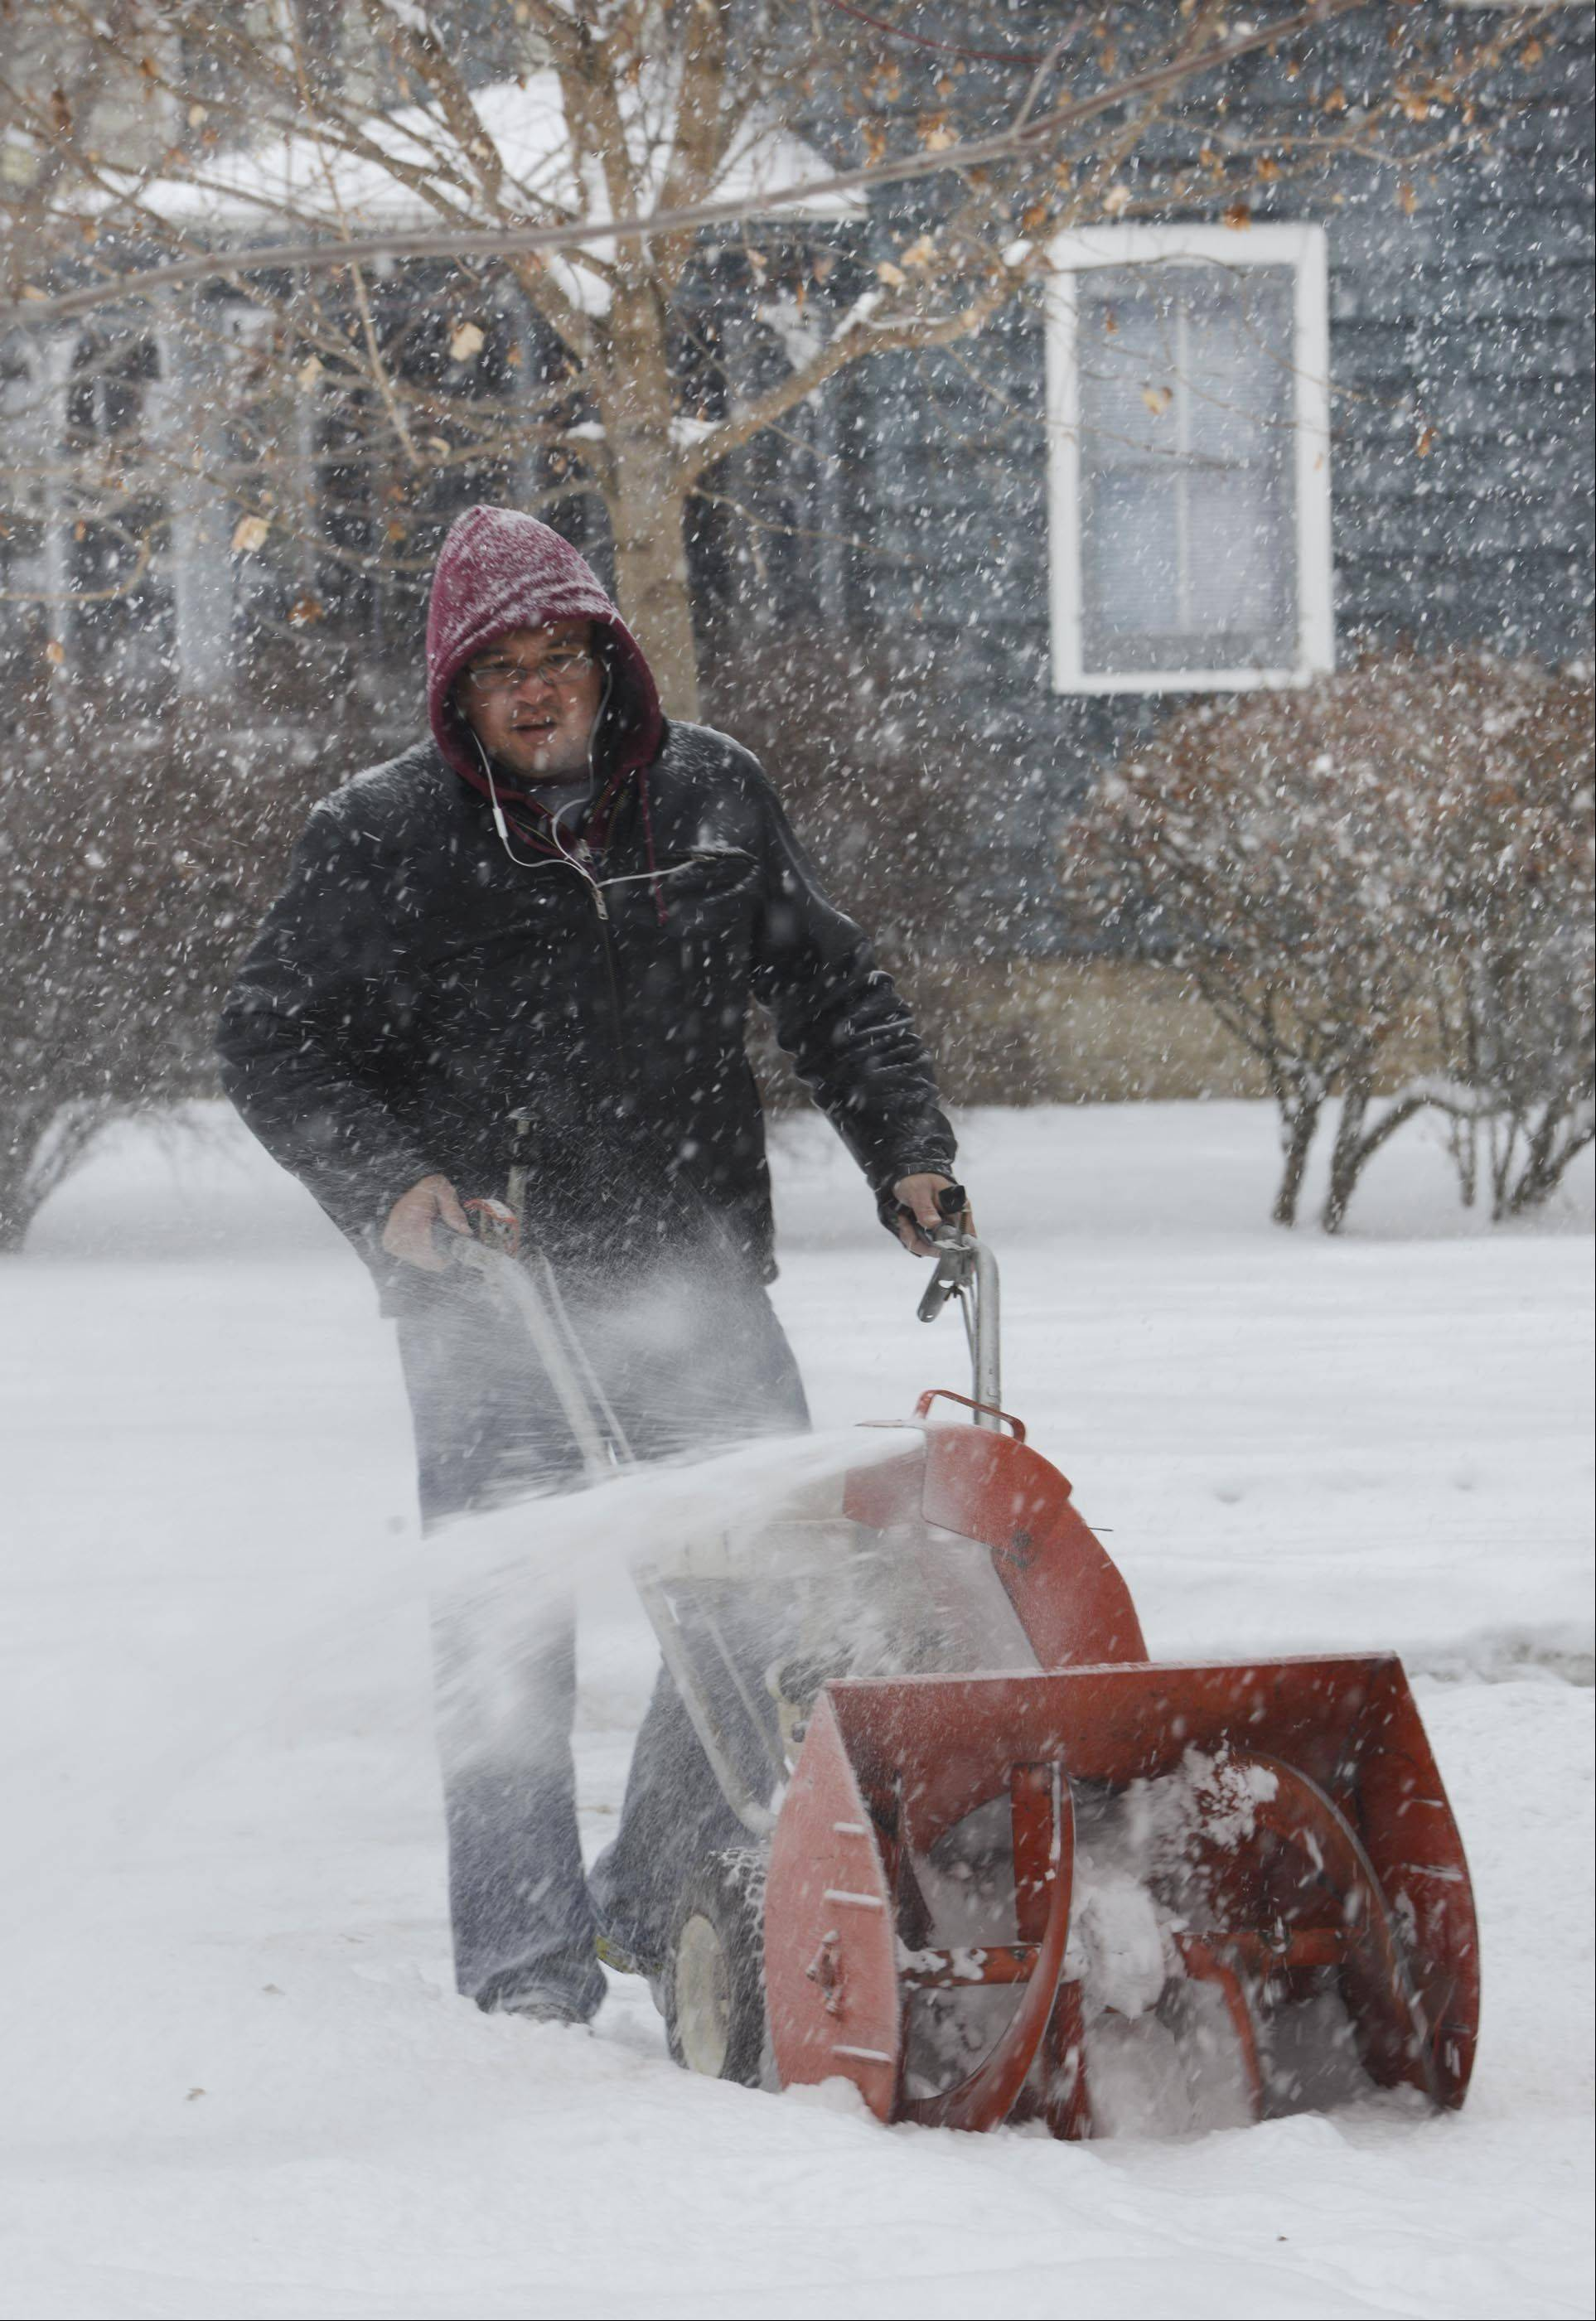 Butch Olanosa uses his old snowblower Wednesday to clear the accumulation on his sidewalk in front of his Jefferson Street home in Batavia.